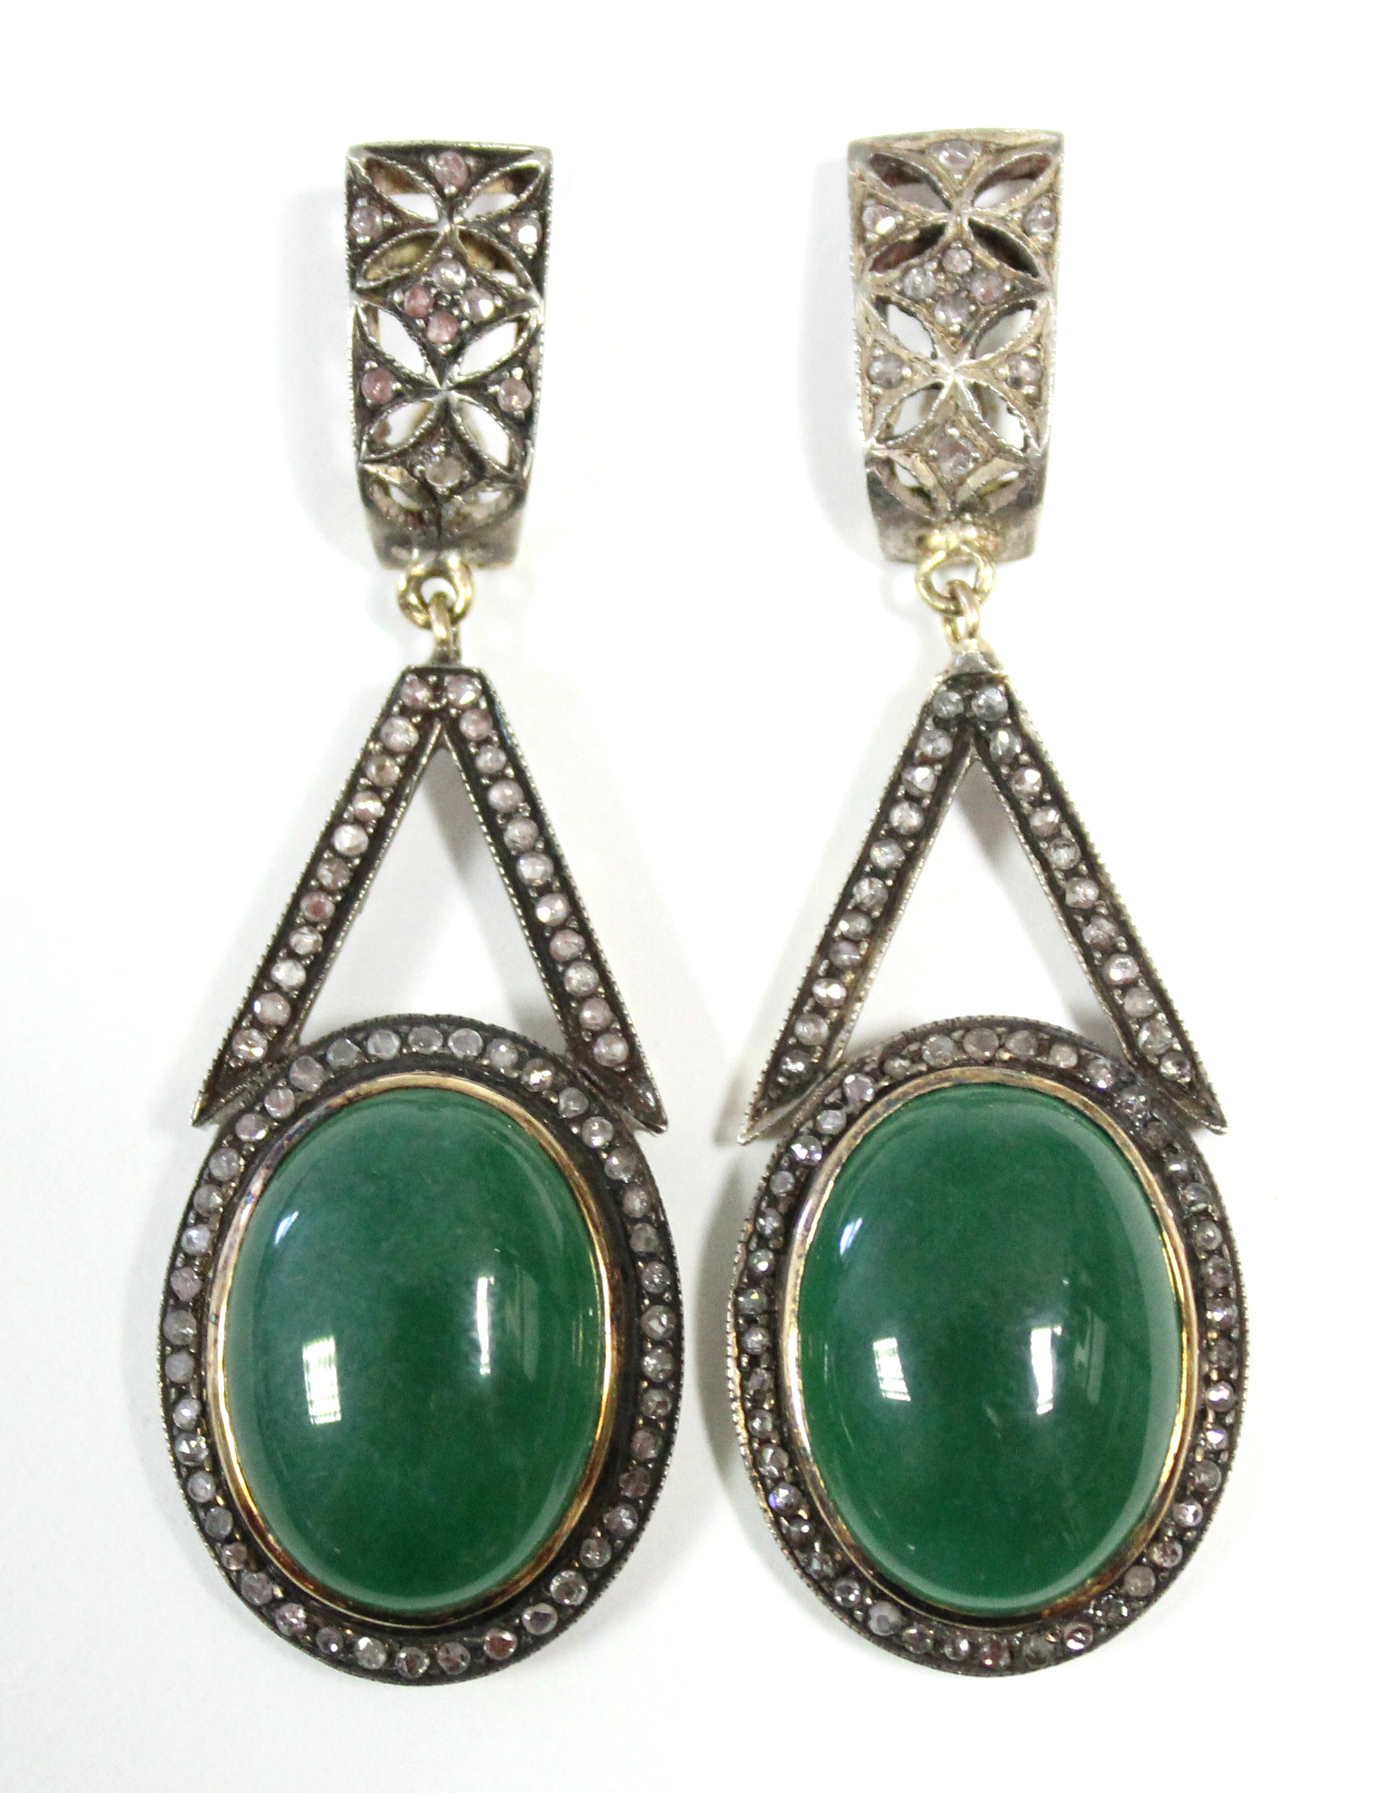 A PAIR OF JADE & DIAMOND PENDANT EARRINGS, each with oval green jade cabochon suspended from an